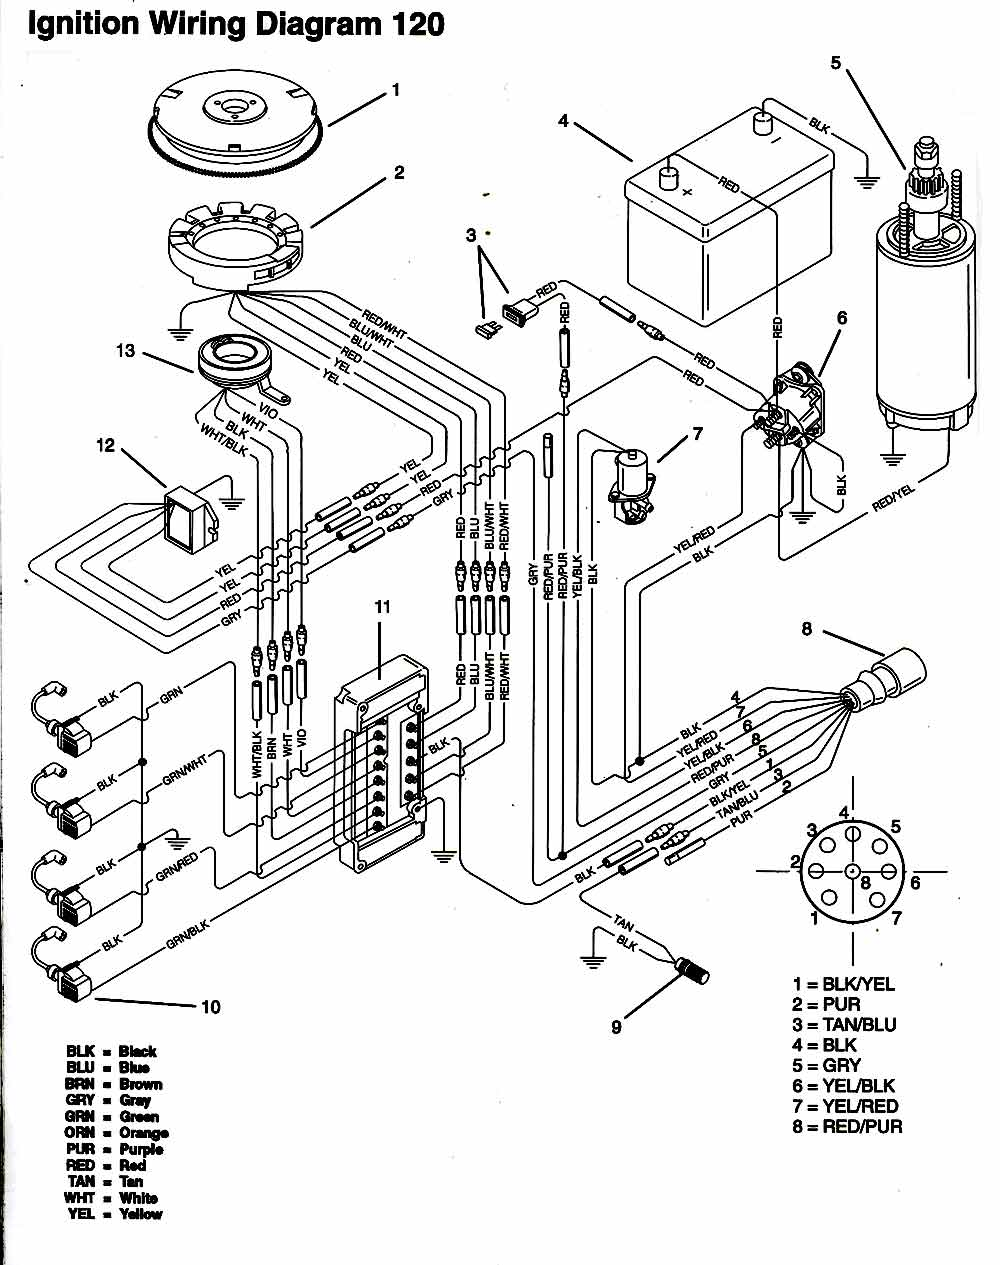 yamaha outboard ignition switch wiring diagram 2000 pontiac grand am engine ford tractor f400 electrical database 3 wire alternator 7 merc best library 25 hp mercury parts